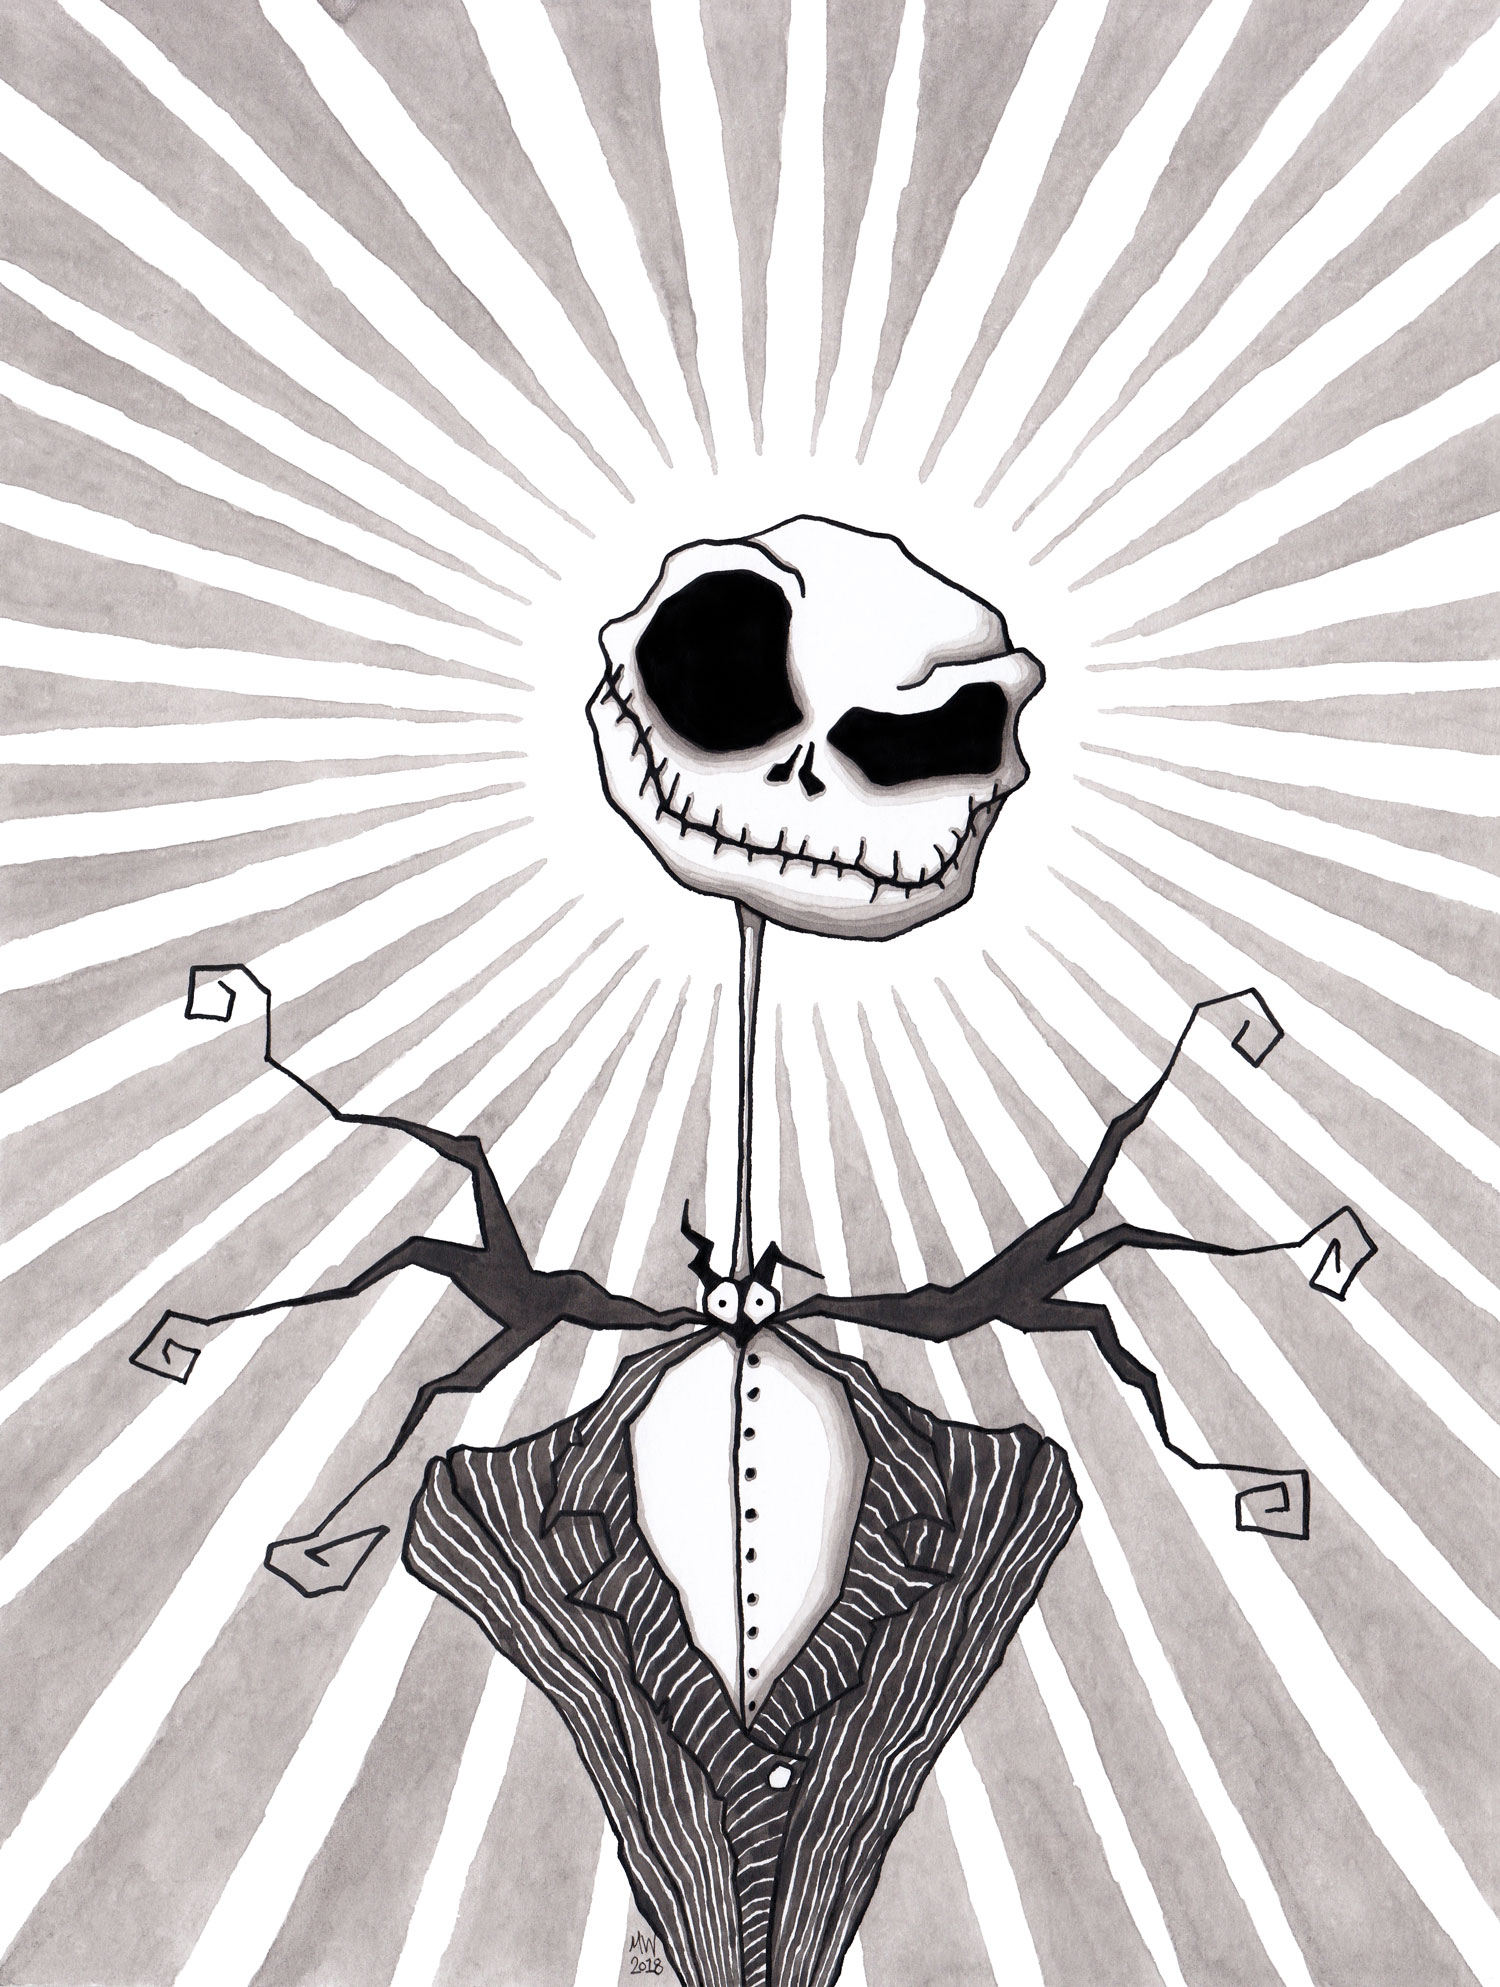 jack-skellington-nightmare-before-christmas-tim-burton-illustration-matthew-woods.jpg